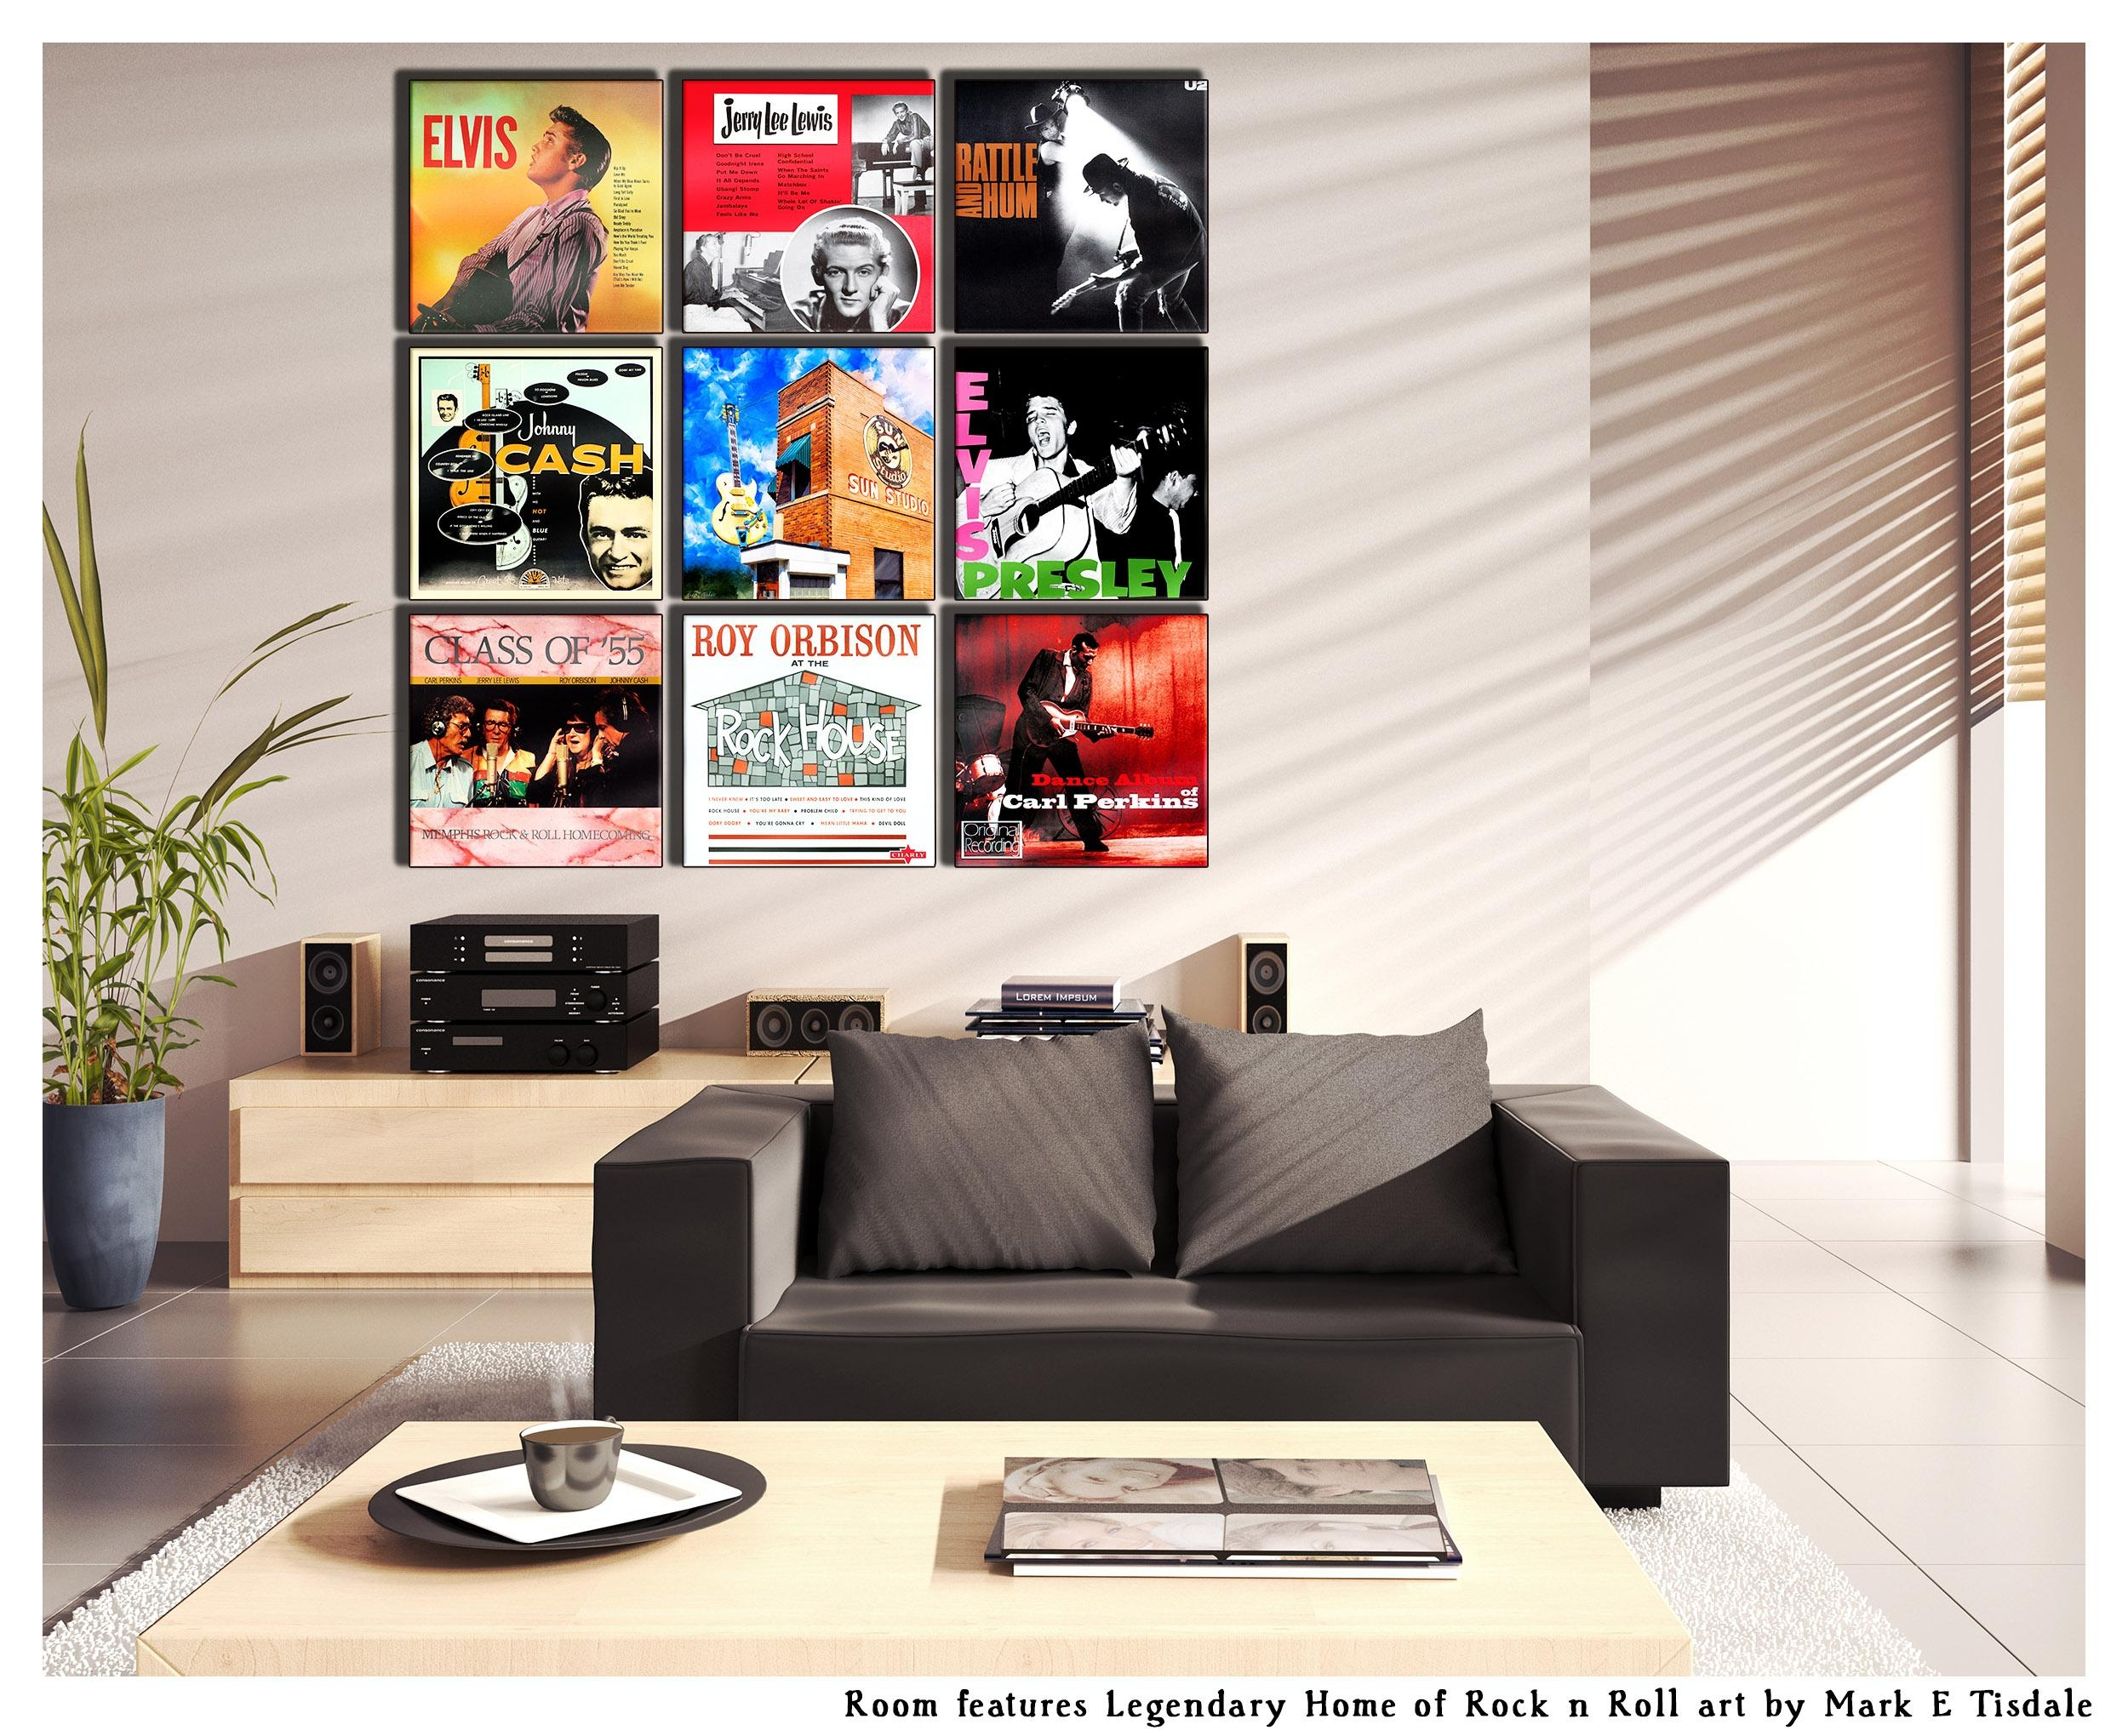 Album Cover Wall Art Display Ideas – Grouping With Art – Mark On Art With Regard To Album Cover Wall Art (Image 3 of 20)